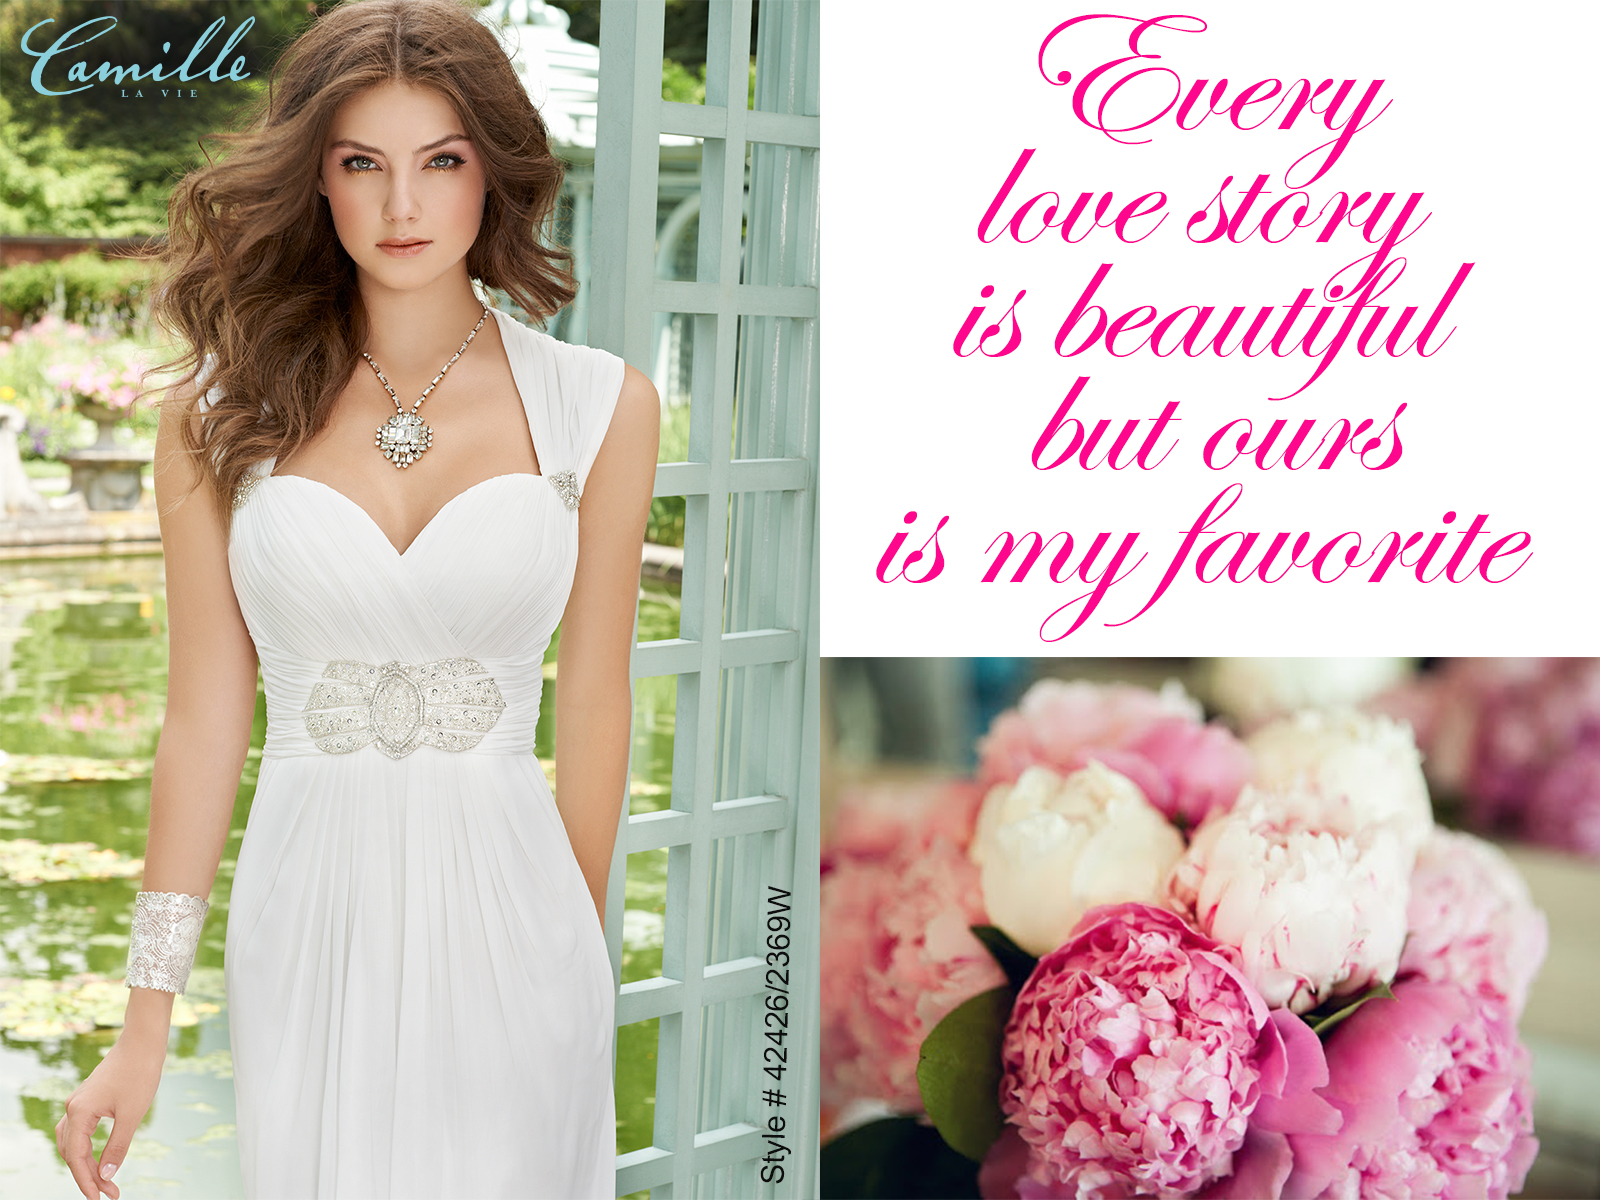 cd6accb92d1 Camille La Vie Group Usa 43424 3254w Wedding Dress The Knot. live out the  ultimate dream wedding